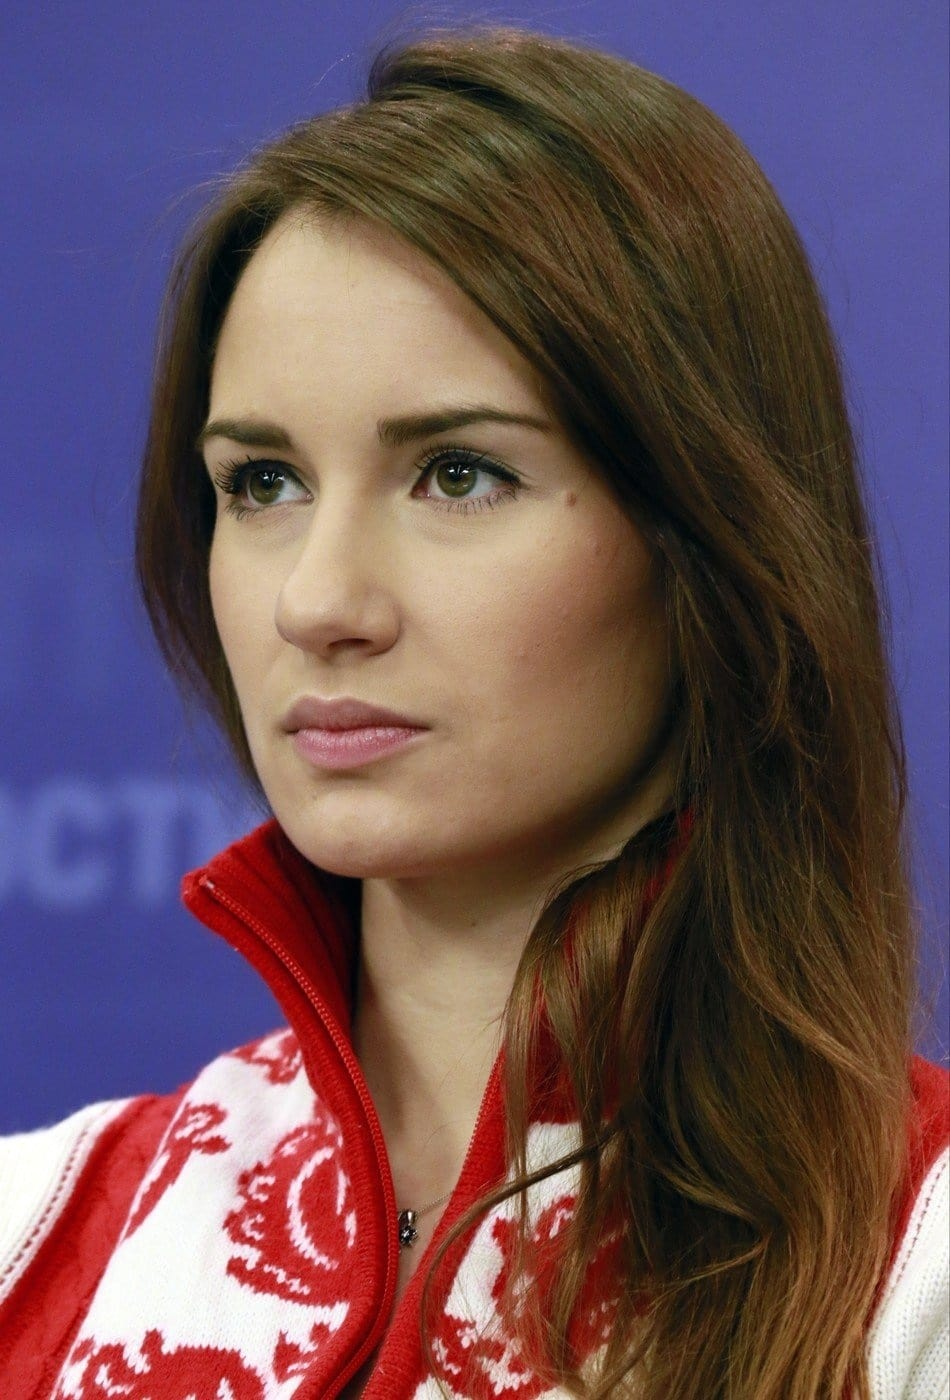 Russian Curling Team : GirlsMirinGirls